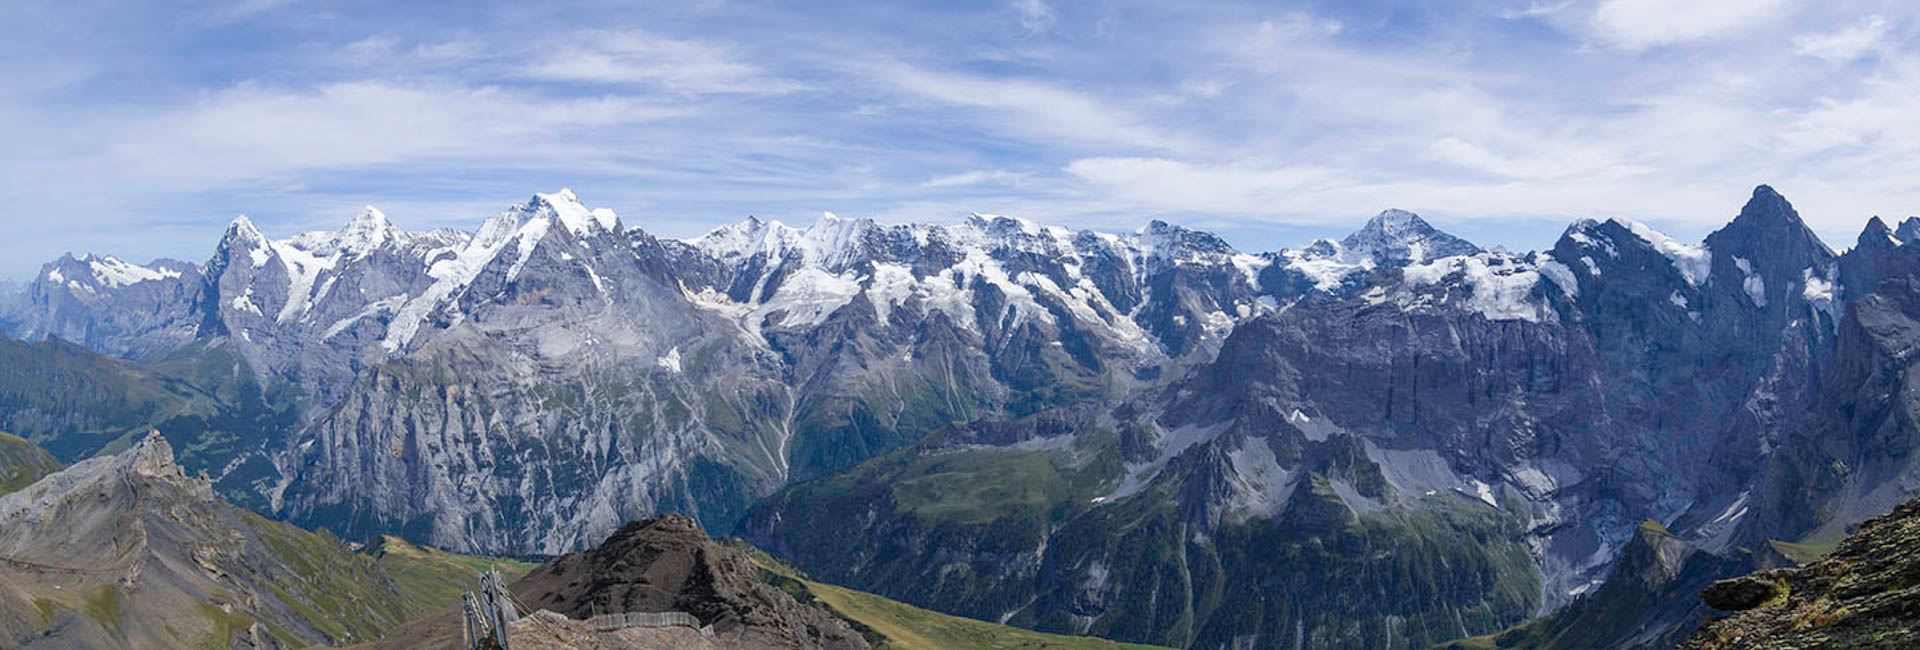 Europe:  The Swiss Alps and Dolomites